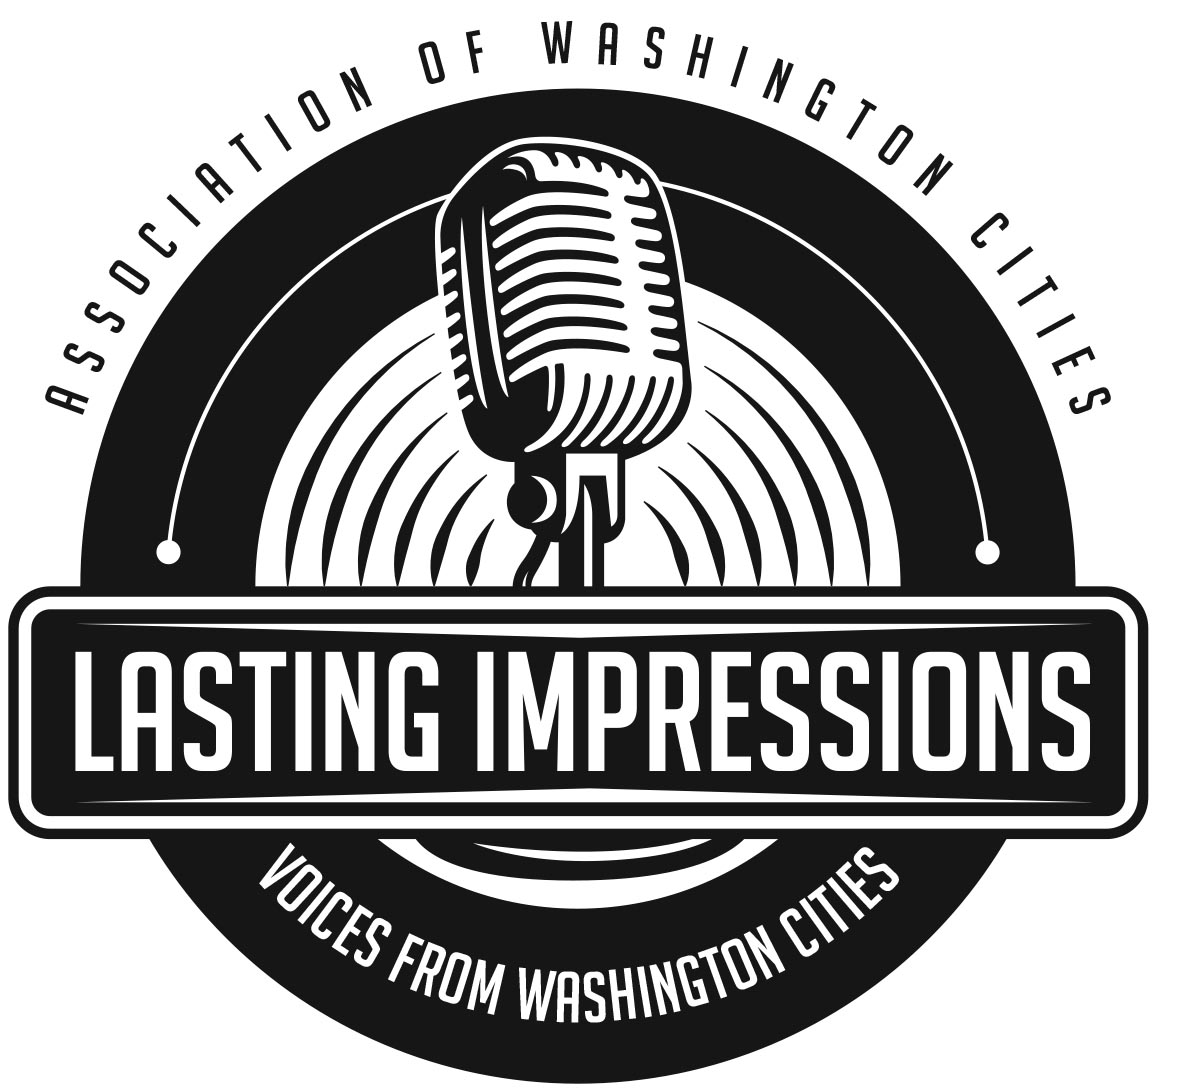 Lasting Impressions | The secret to successful community leadership - Episode 003